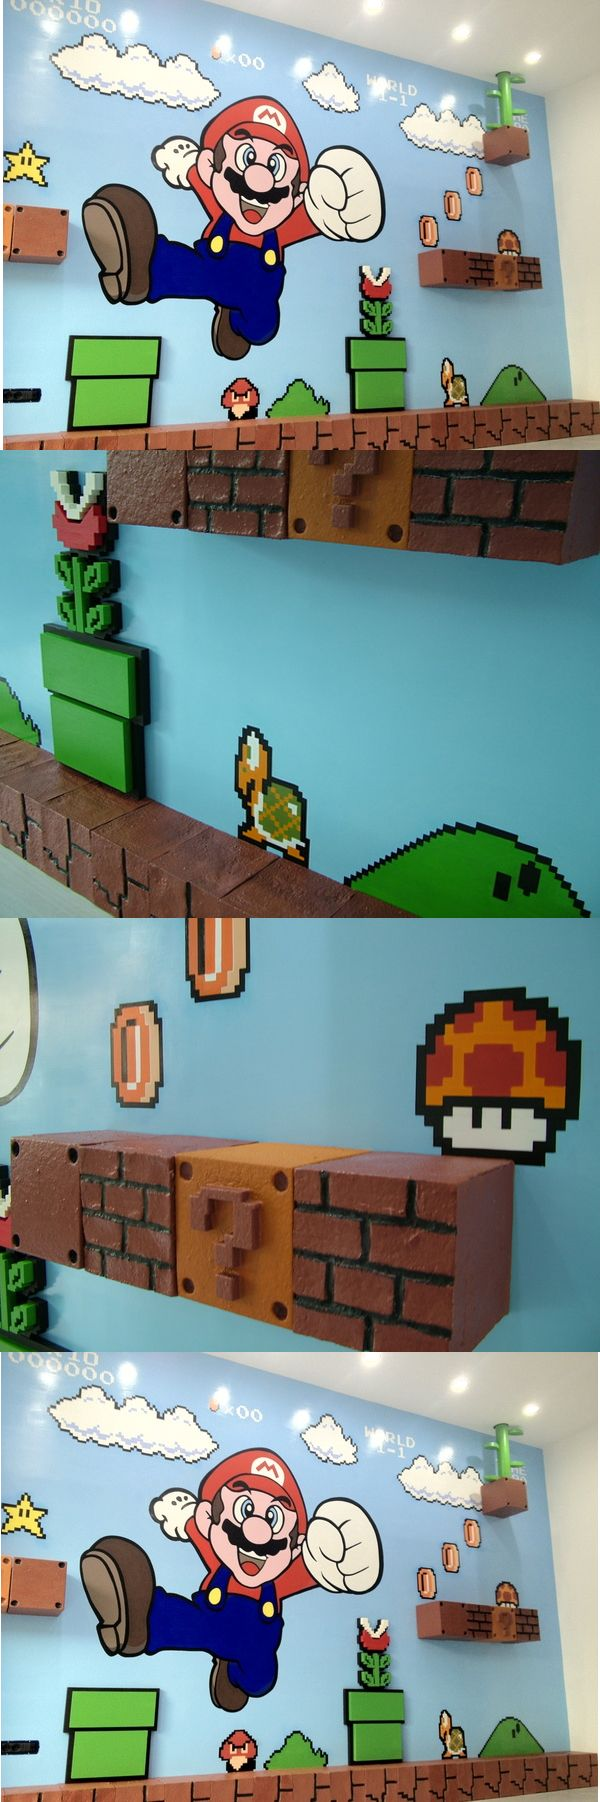 Amazing 3D Super Mario Bros Mural 6